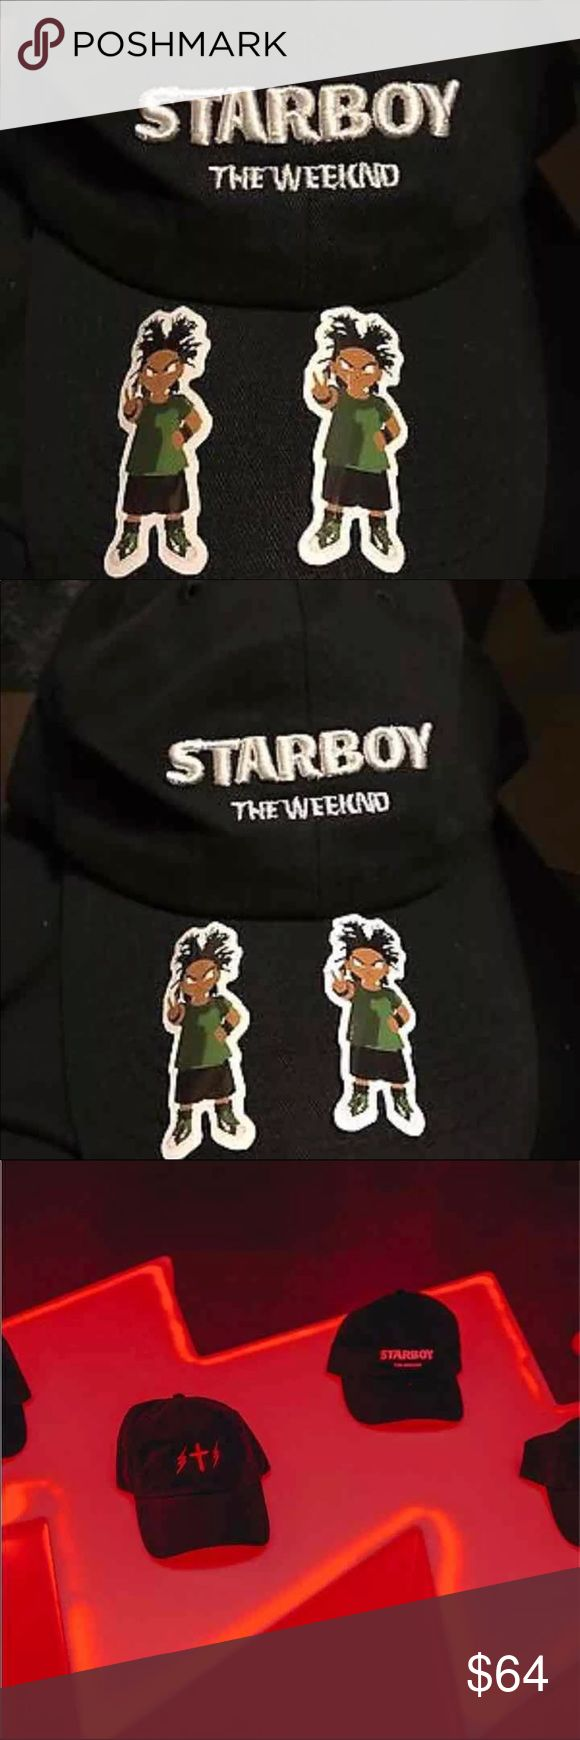 The Weeknd sold out Starboy ceremony hat The Weeknd Starboy Opening Ceremony Pop up shop hat with Two vinyl stickers Opening Ceremony Accessories Hats